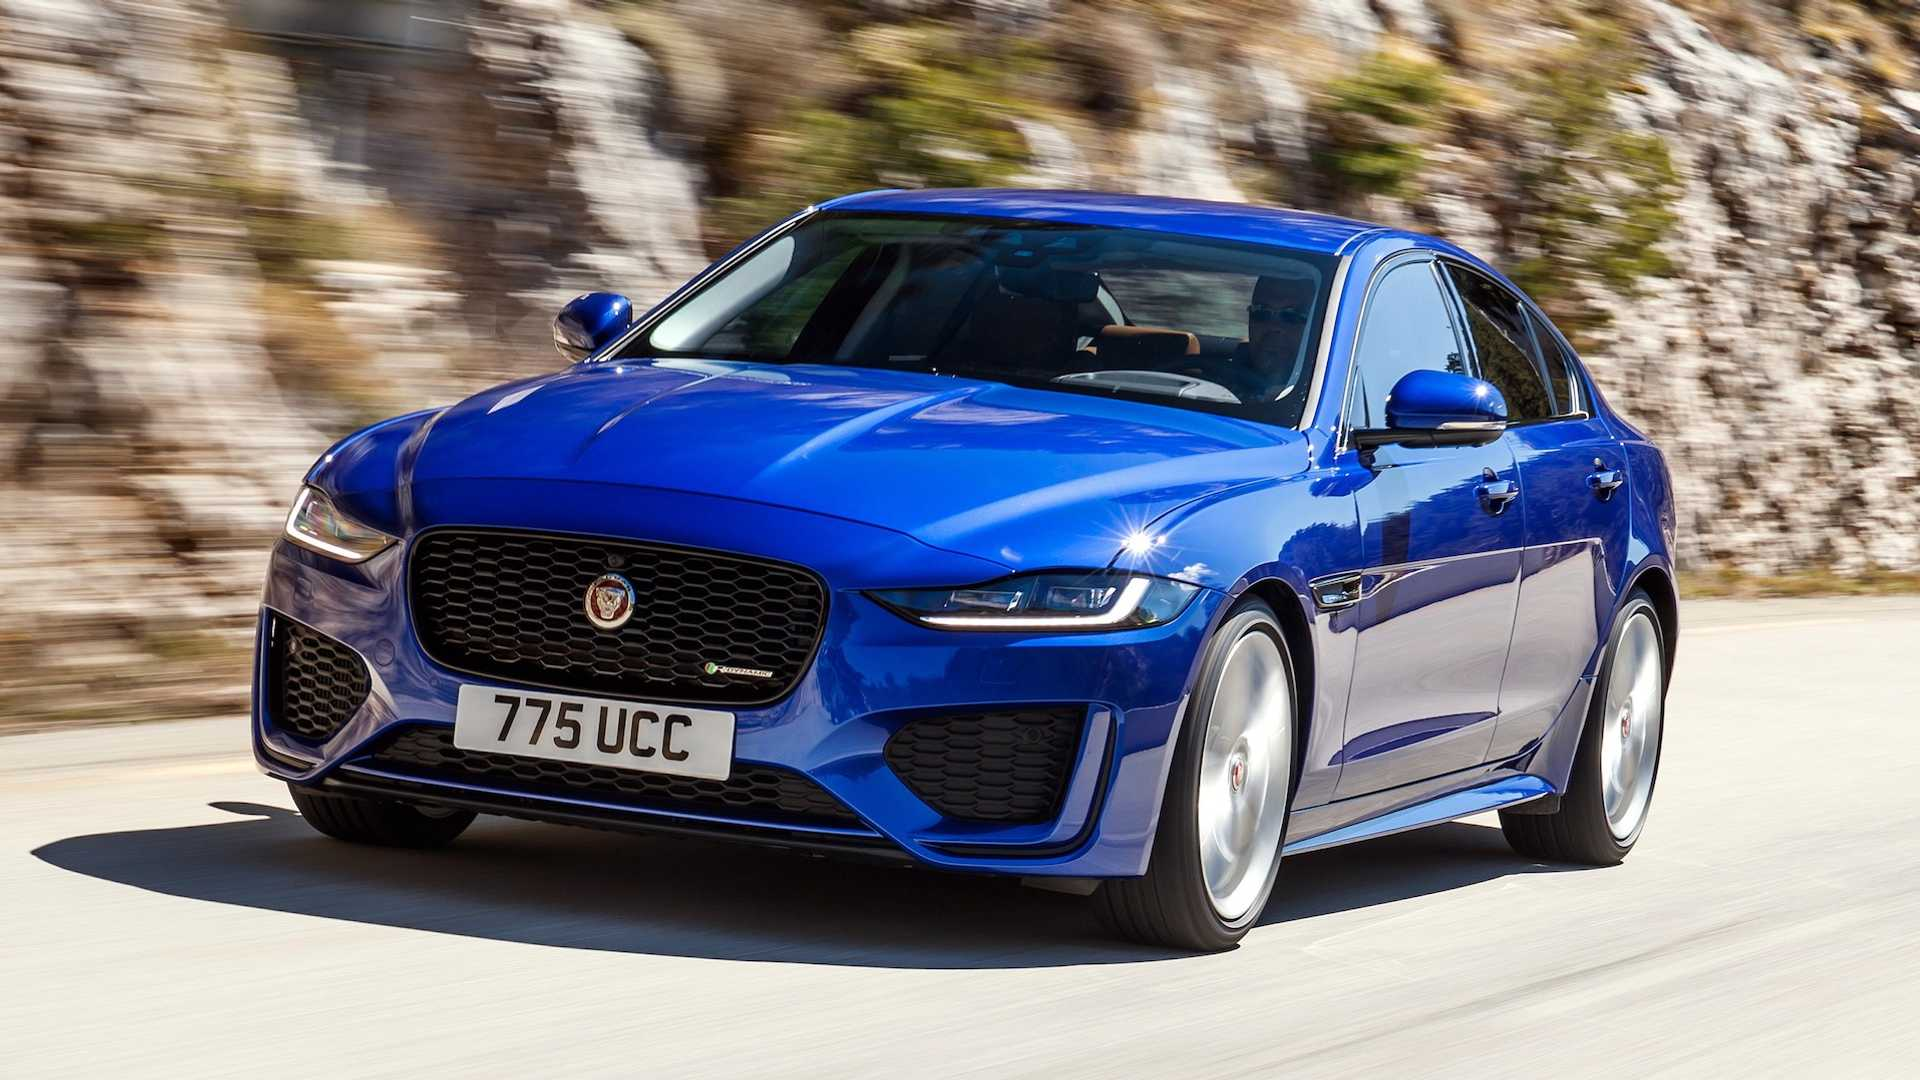 55 New New Jaguar Xe 2020 Review And Release Date